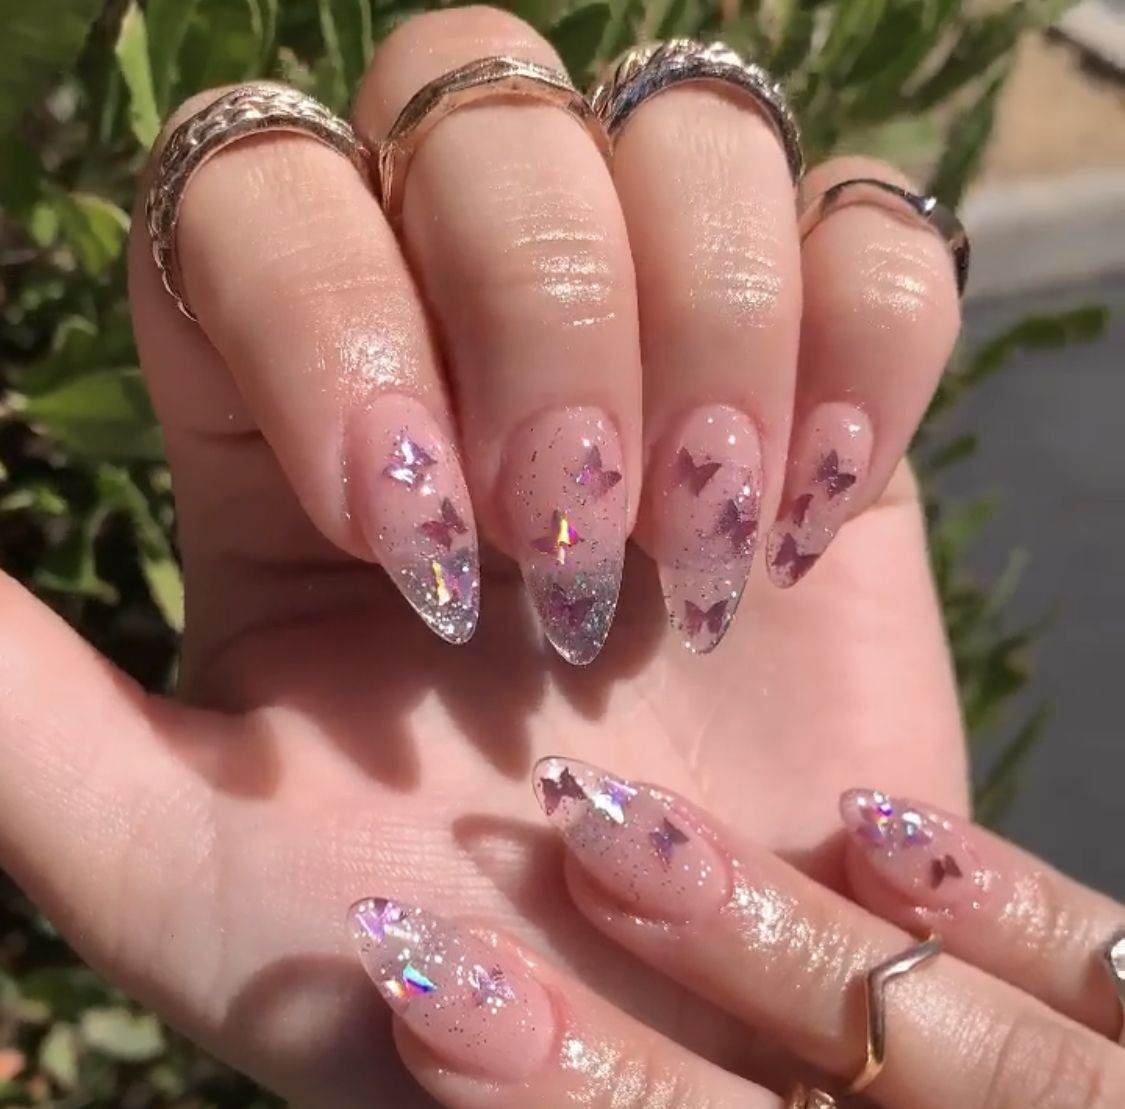 Almond Nails Almond Acrylic Nails Designs Swag Nails Almond Nails Designs